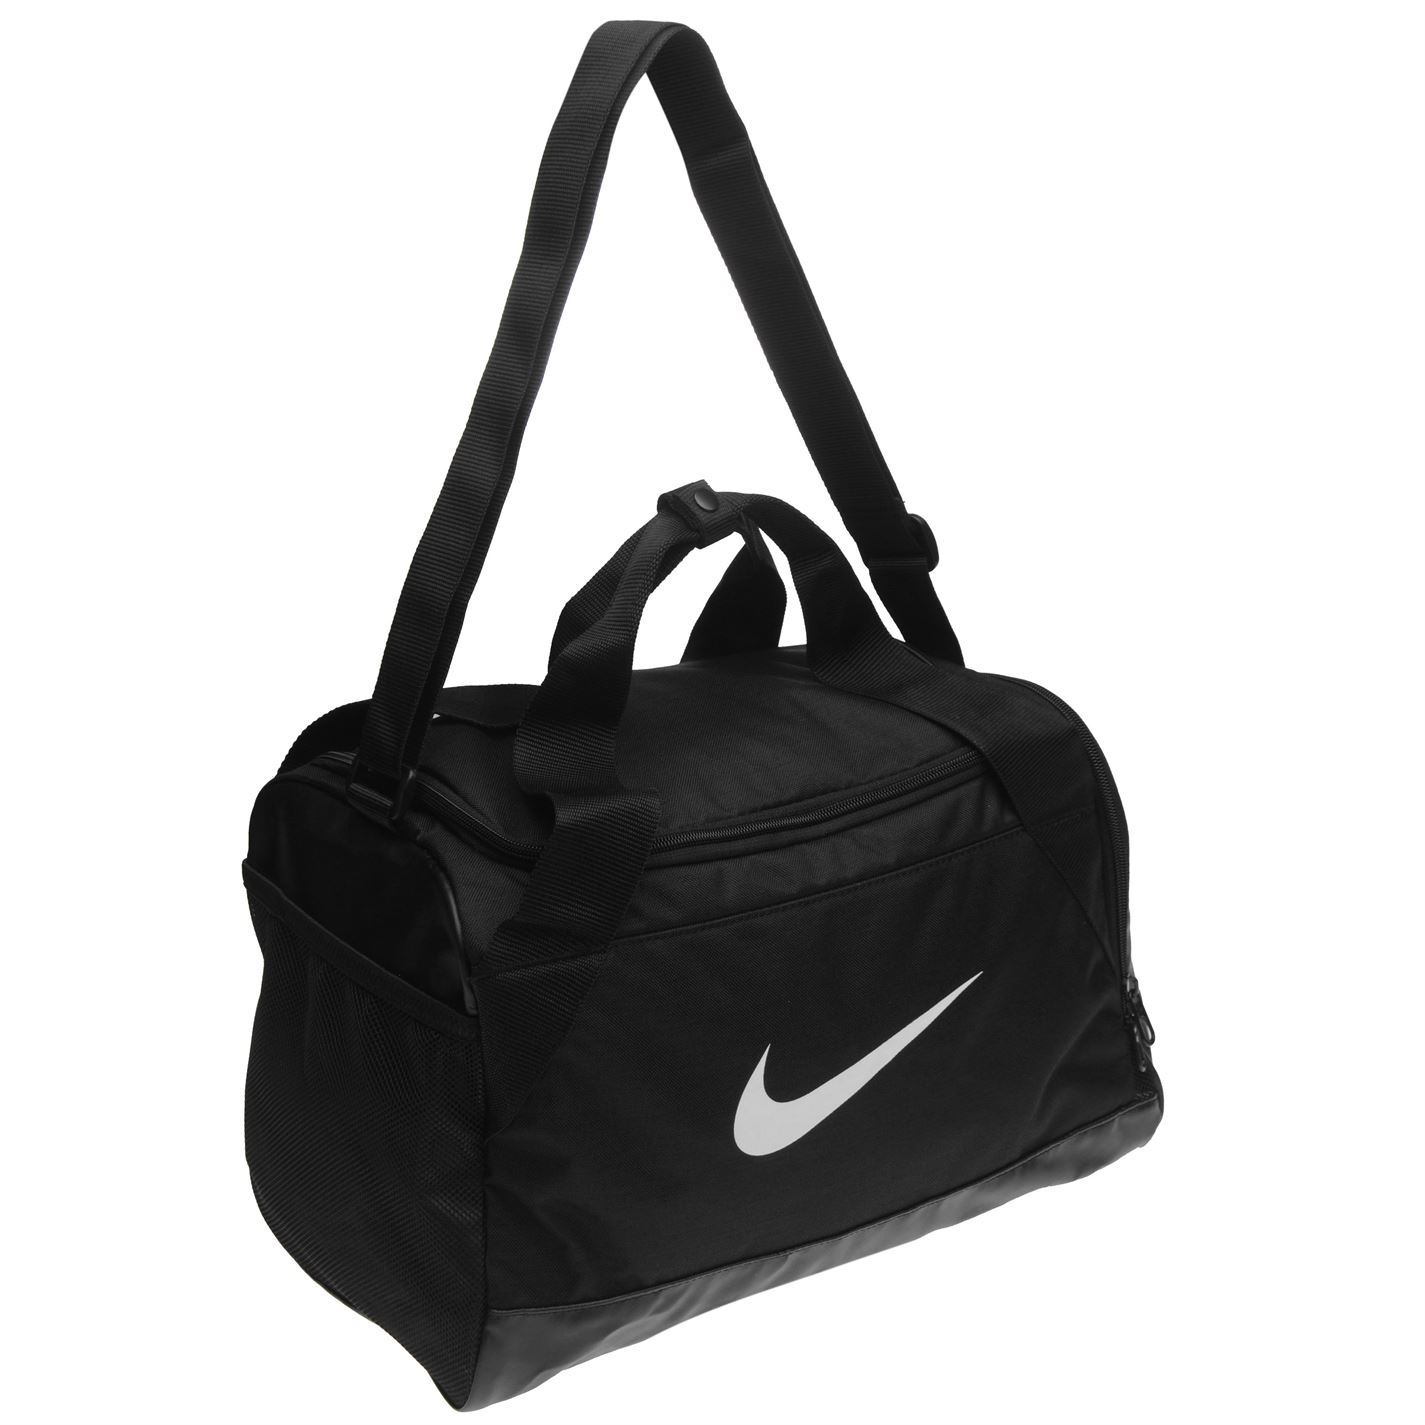 Nike Brasilia XS Grip Sports Holdall Black White Gym Kit Bag Carryall 03df3b7a9d048